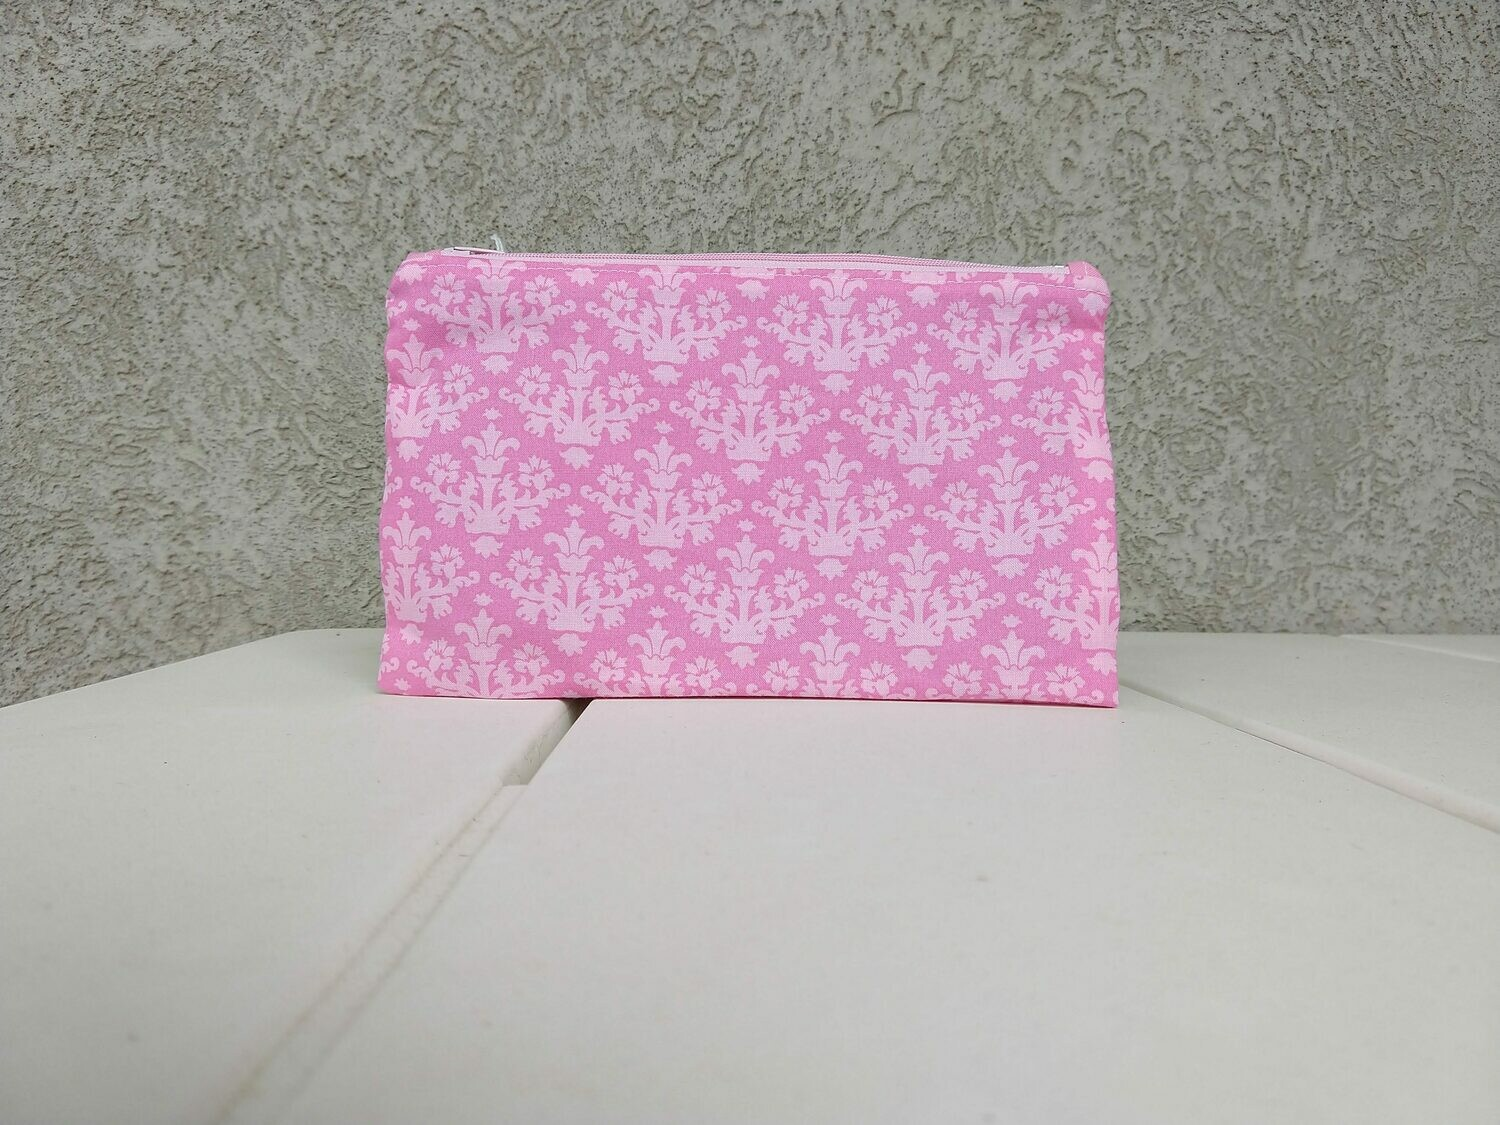 Design your own Large Zipper Pouch